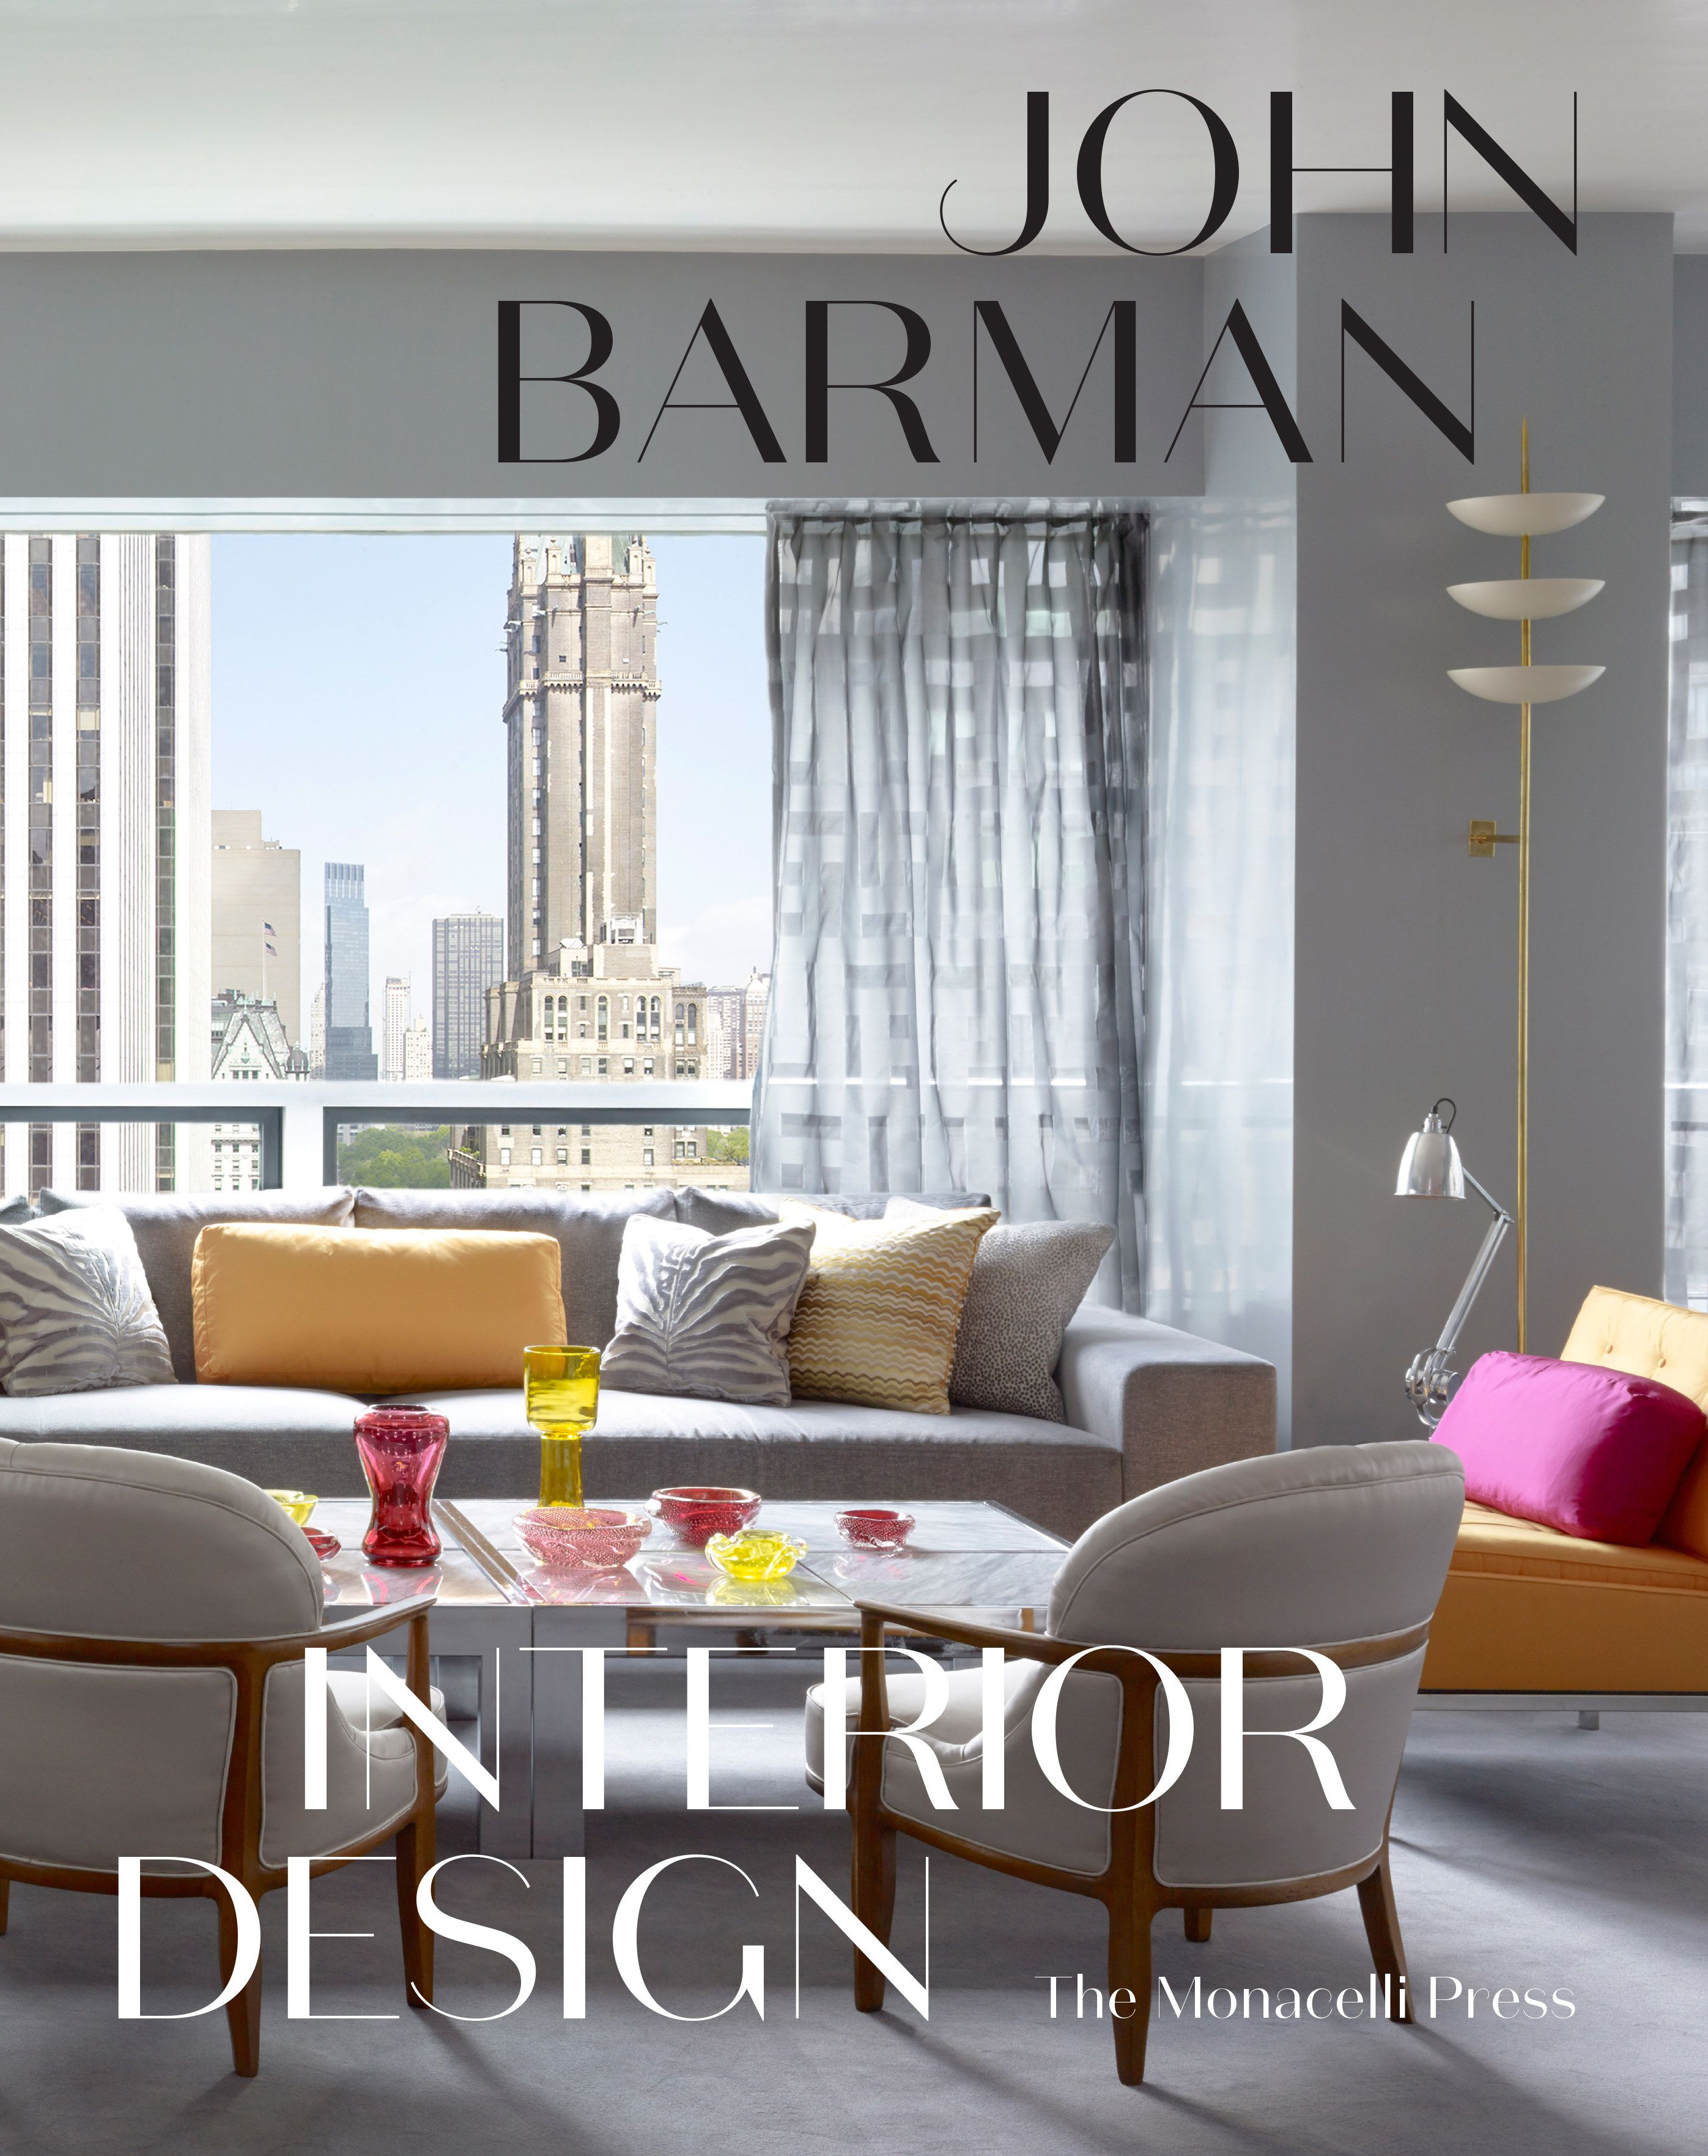 The 21 Best Books By Designers And Architects Of 2015 Interior